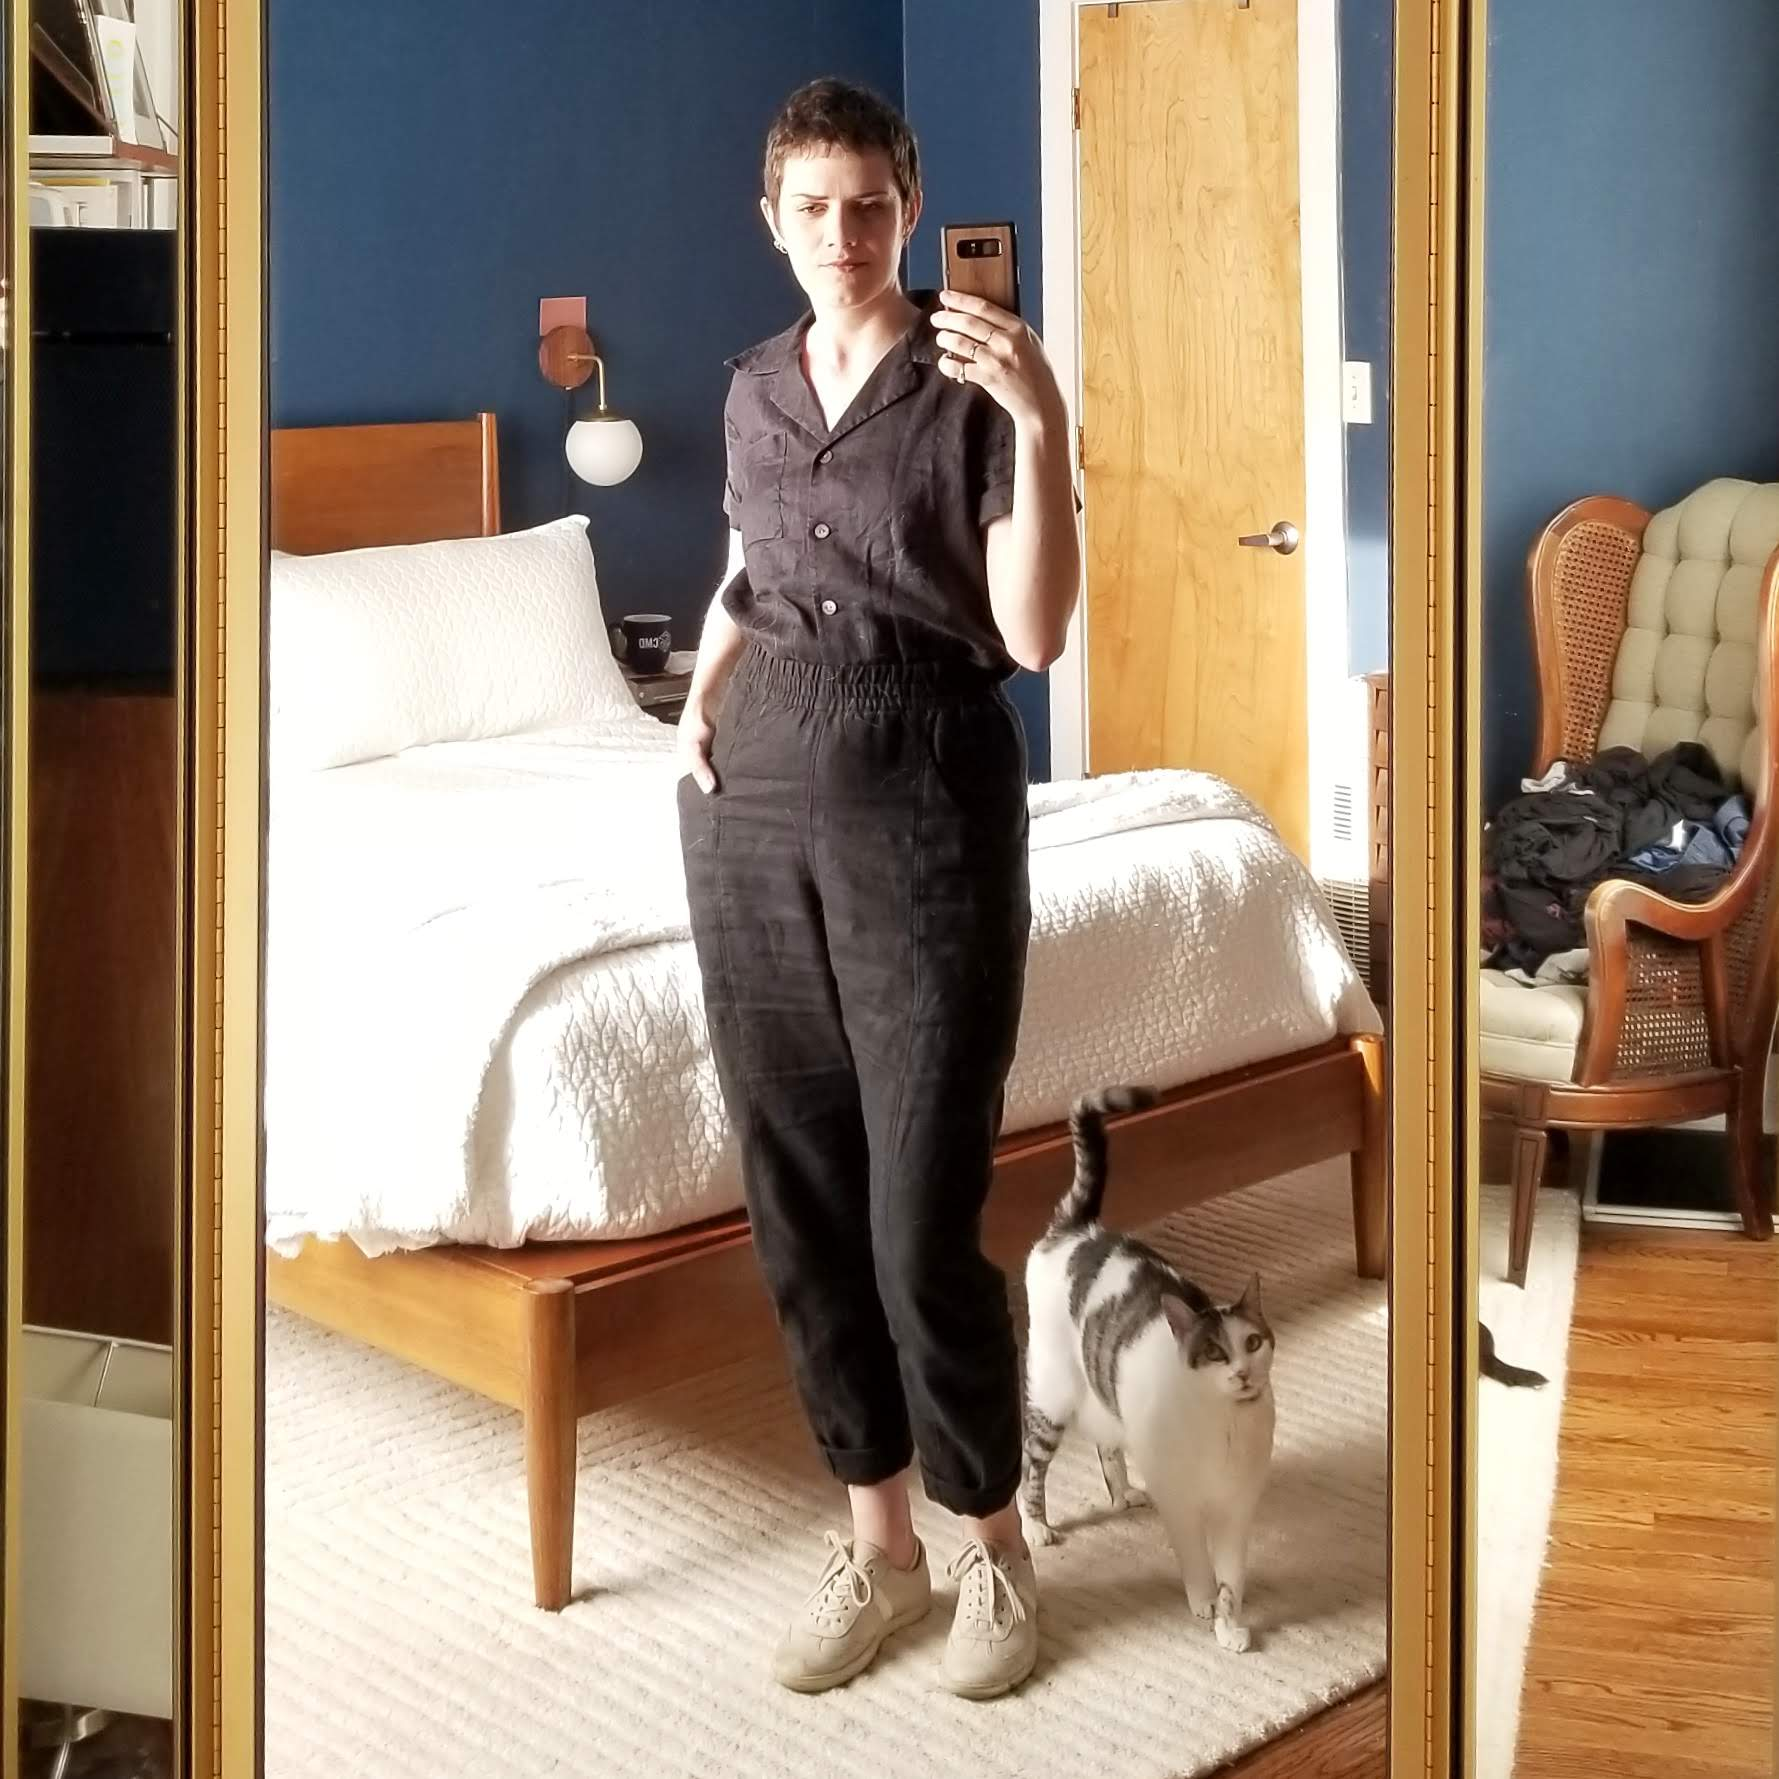 Monday - July 9, 2018So I picked up these Elizabeth Suzann black linen clydes from another wearer. I wanted to try them out in a 4T since I have them in flax in 6T and find they stretch a good bit with wear. This is day one of wearing them and I can't put my finger on it, but something feels off with the fit.